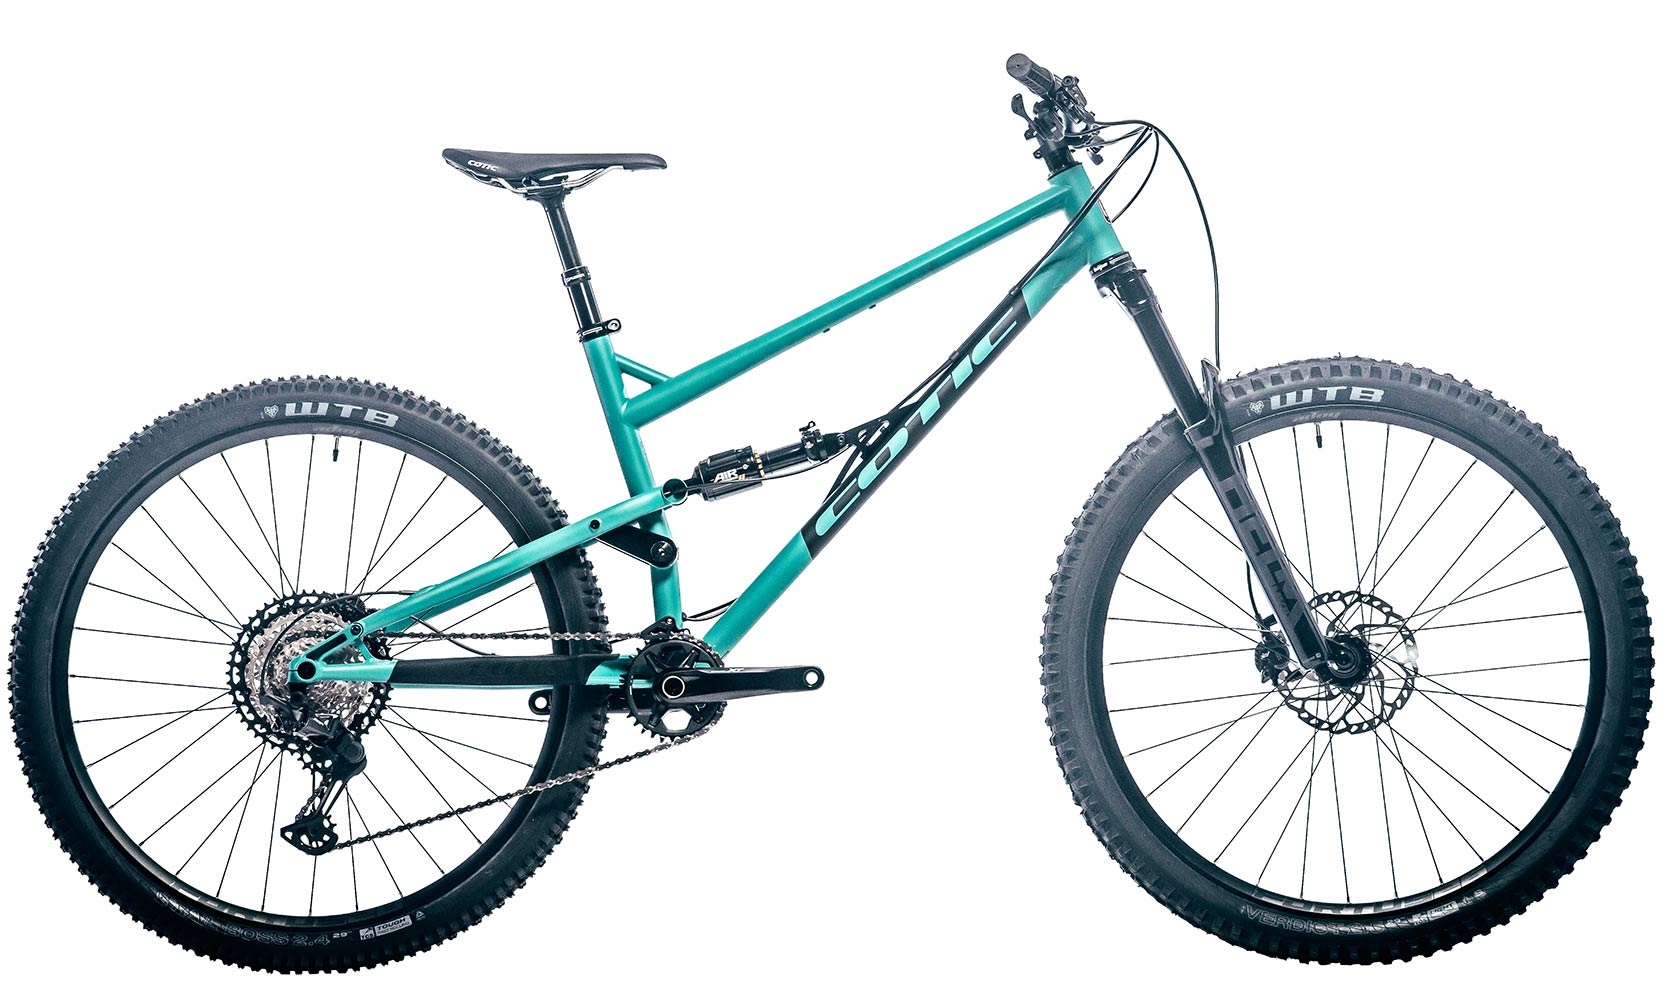 Cotic Jeht in Matte Teal, steel full suspension mountain bike, 29 mountain bike, 140mm travel, uk made, british made, made in britain, reynolds 853, long geometry